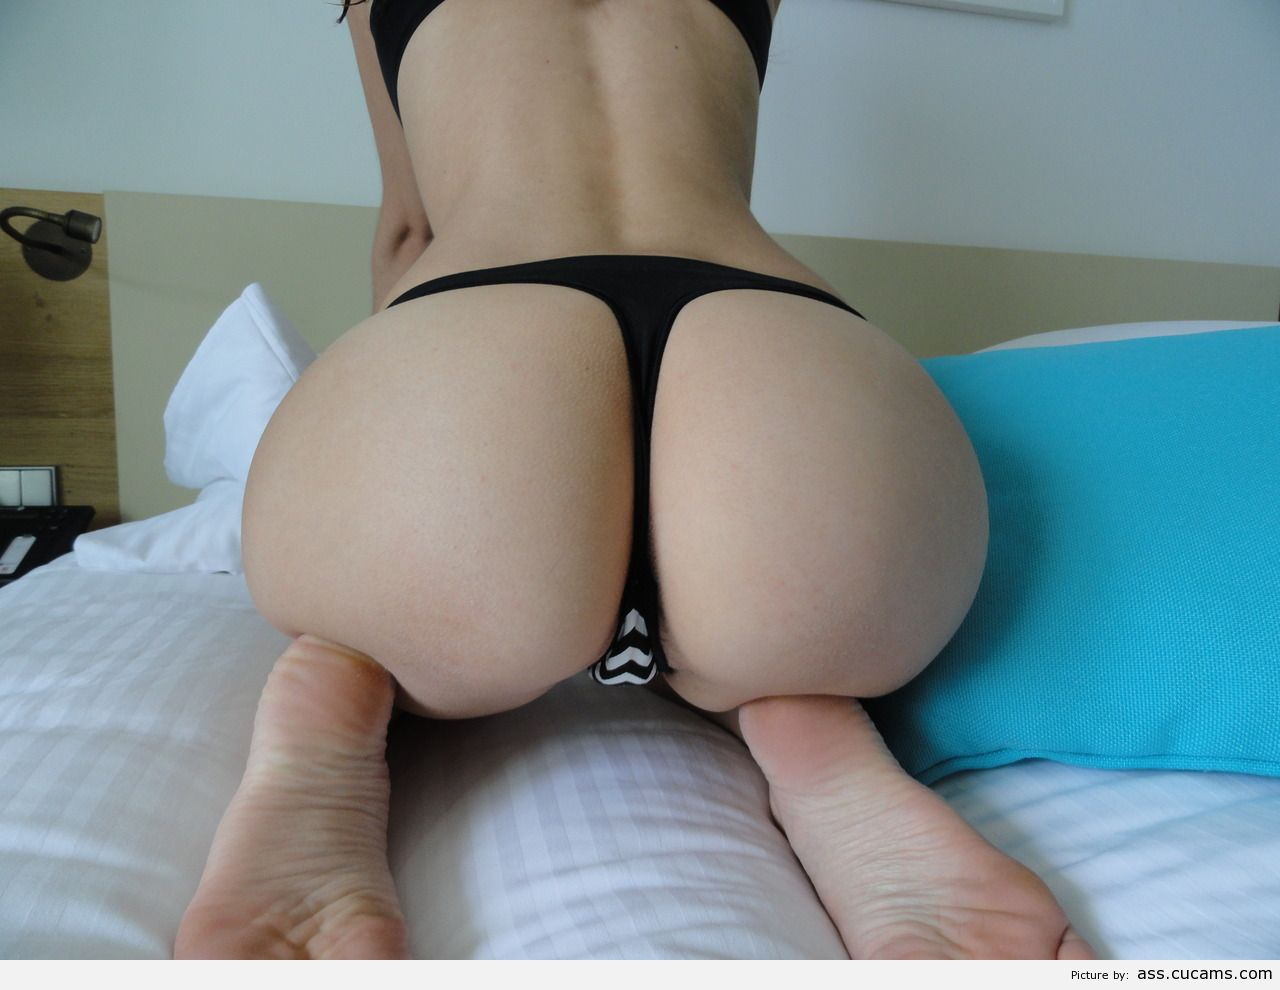 Ass Amputee Argentinian by ass.cucams.com